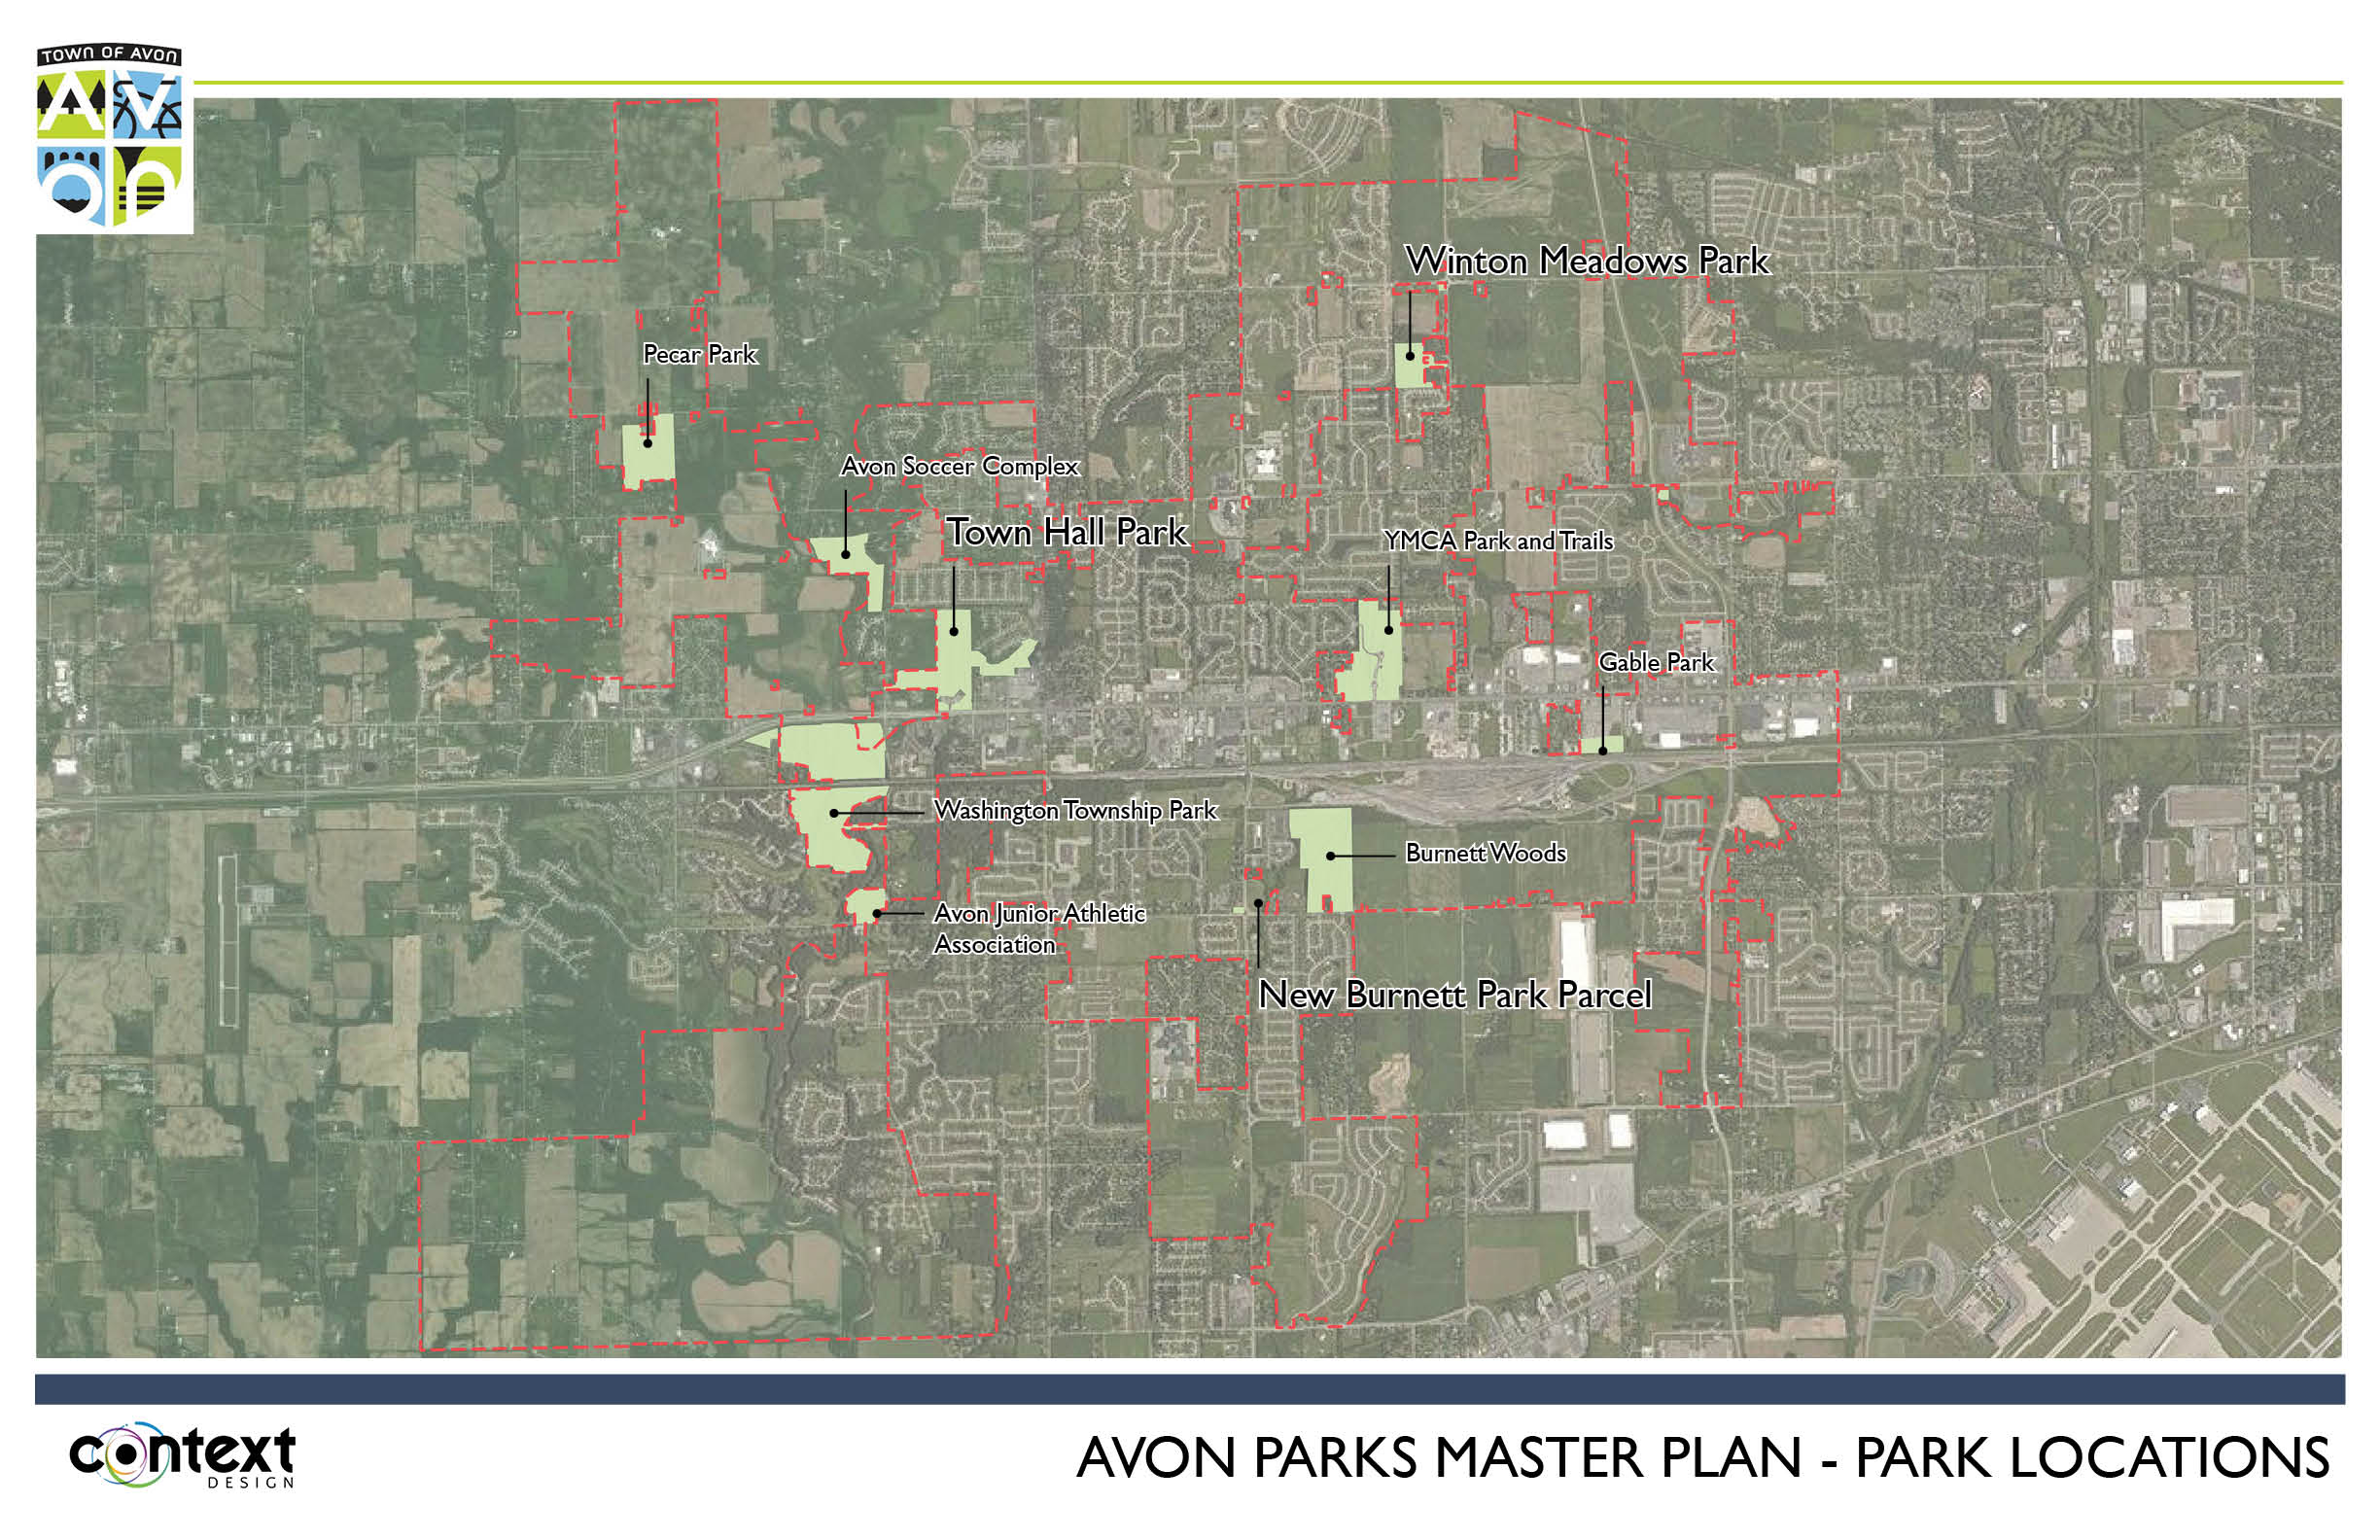 """Context Map of Avon, Indiana<br><span style=""""font-size: 10pt;""""><a href=""""https://www.dropbox.com/s/1nb4eu12jpmh54h/1126%20Refined%20Concept%20and%20Photo%20Boards.jpg?dl=0"""" rel=""""nofollow"""" target=""""_blank"""">Click here to view/download a larger image</a></span>"""